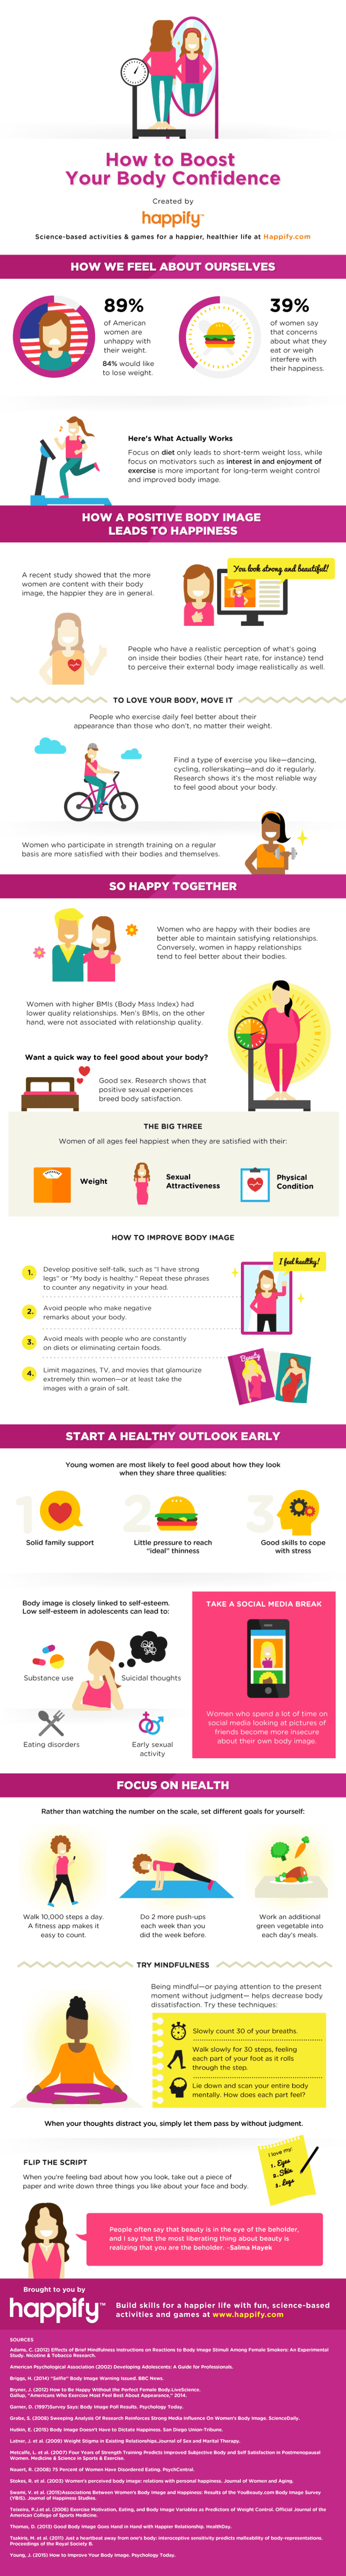 16 Ways To Boost Your Body Confidence (Infographic)